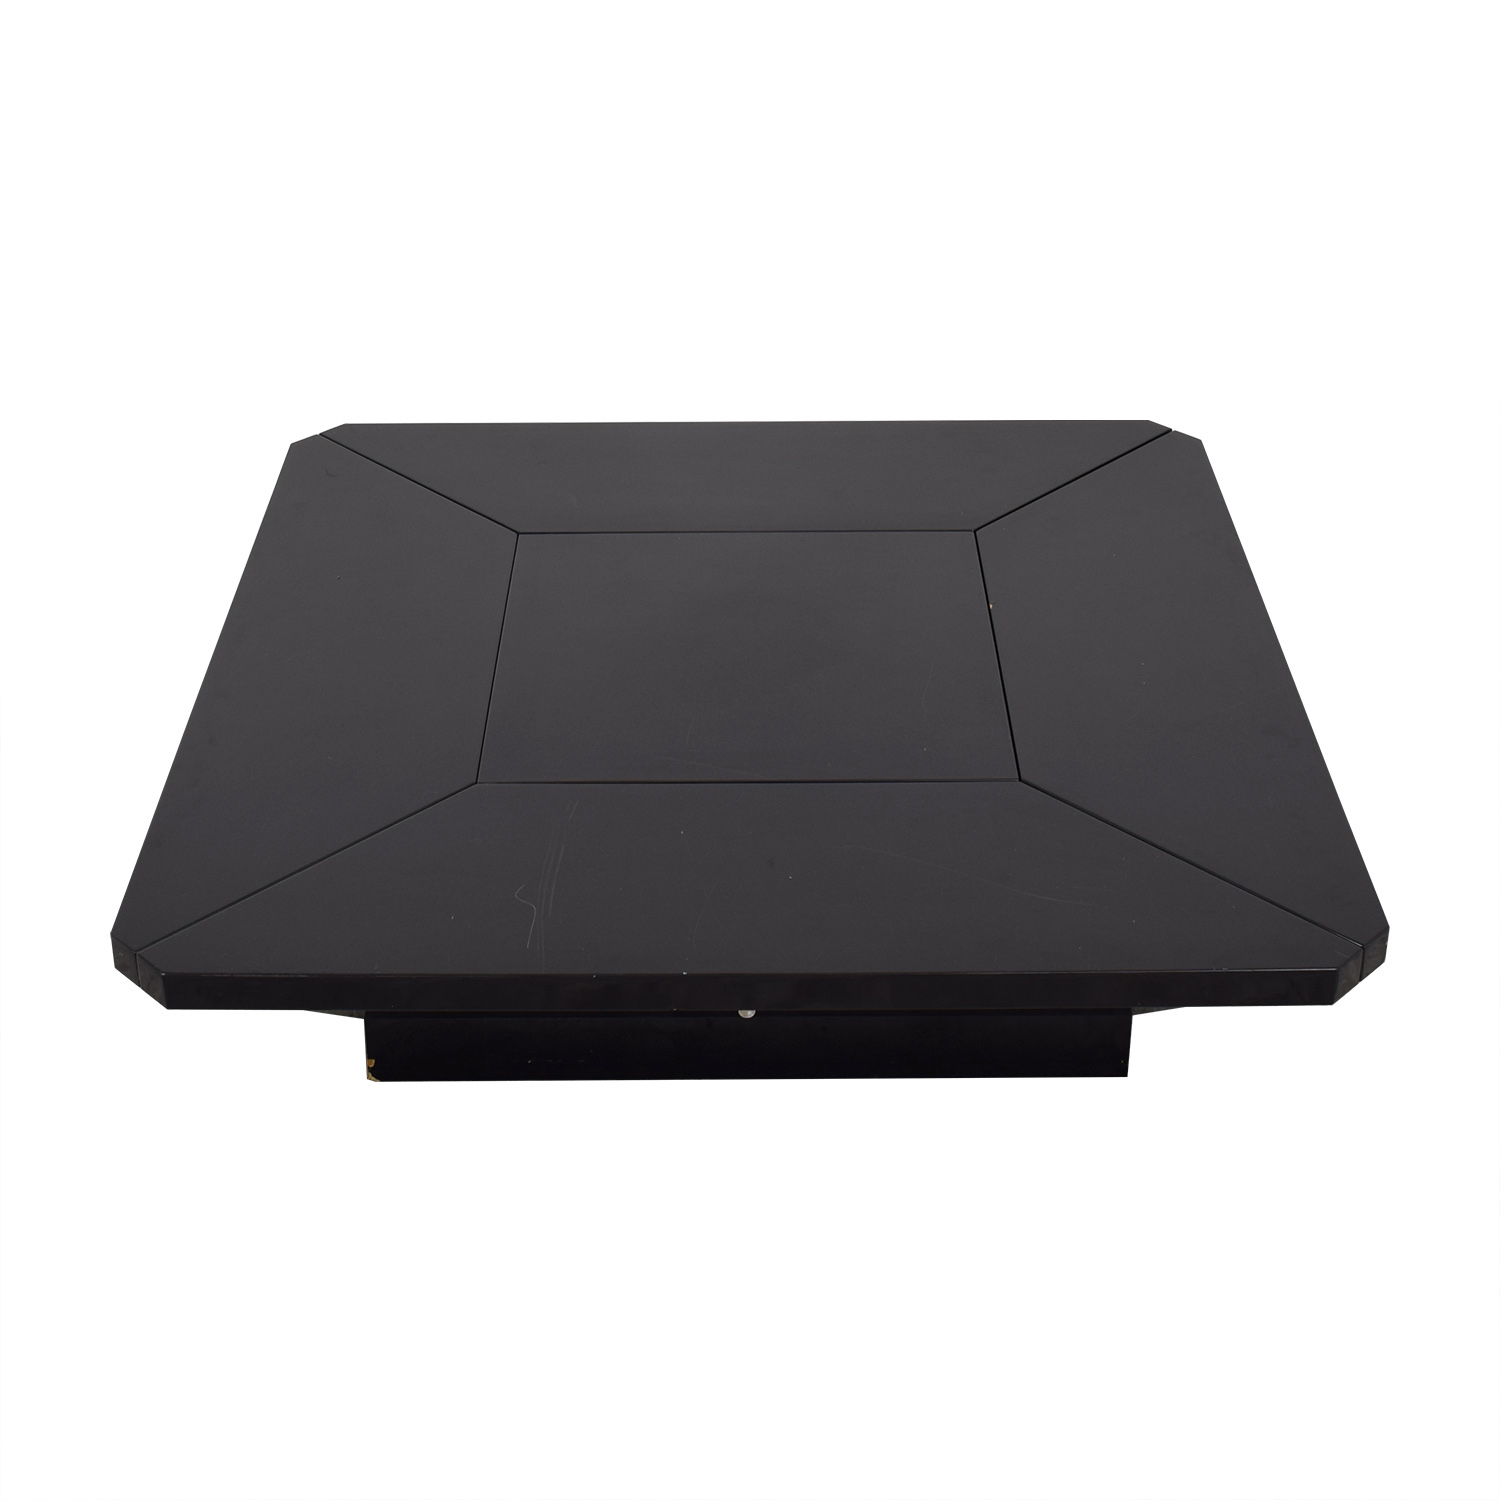 Steelcase Steelcase Transforming Lift Top Coffee Table dimensions